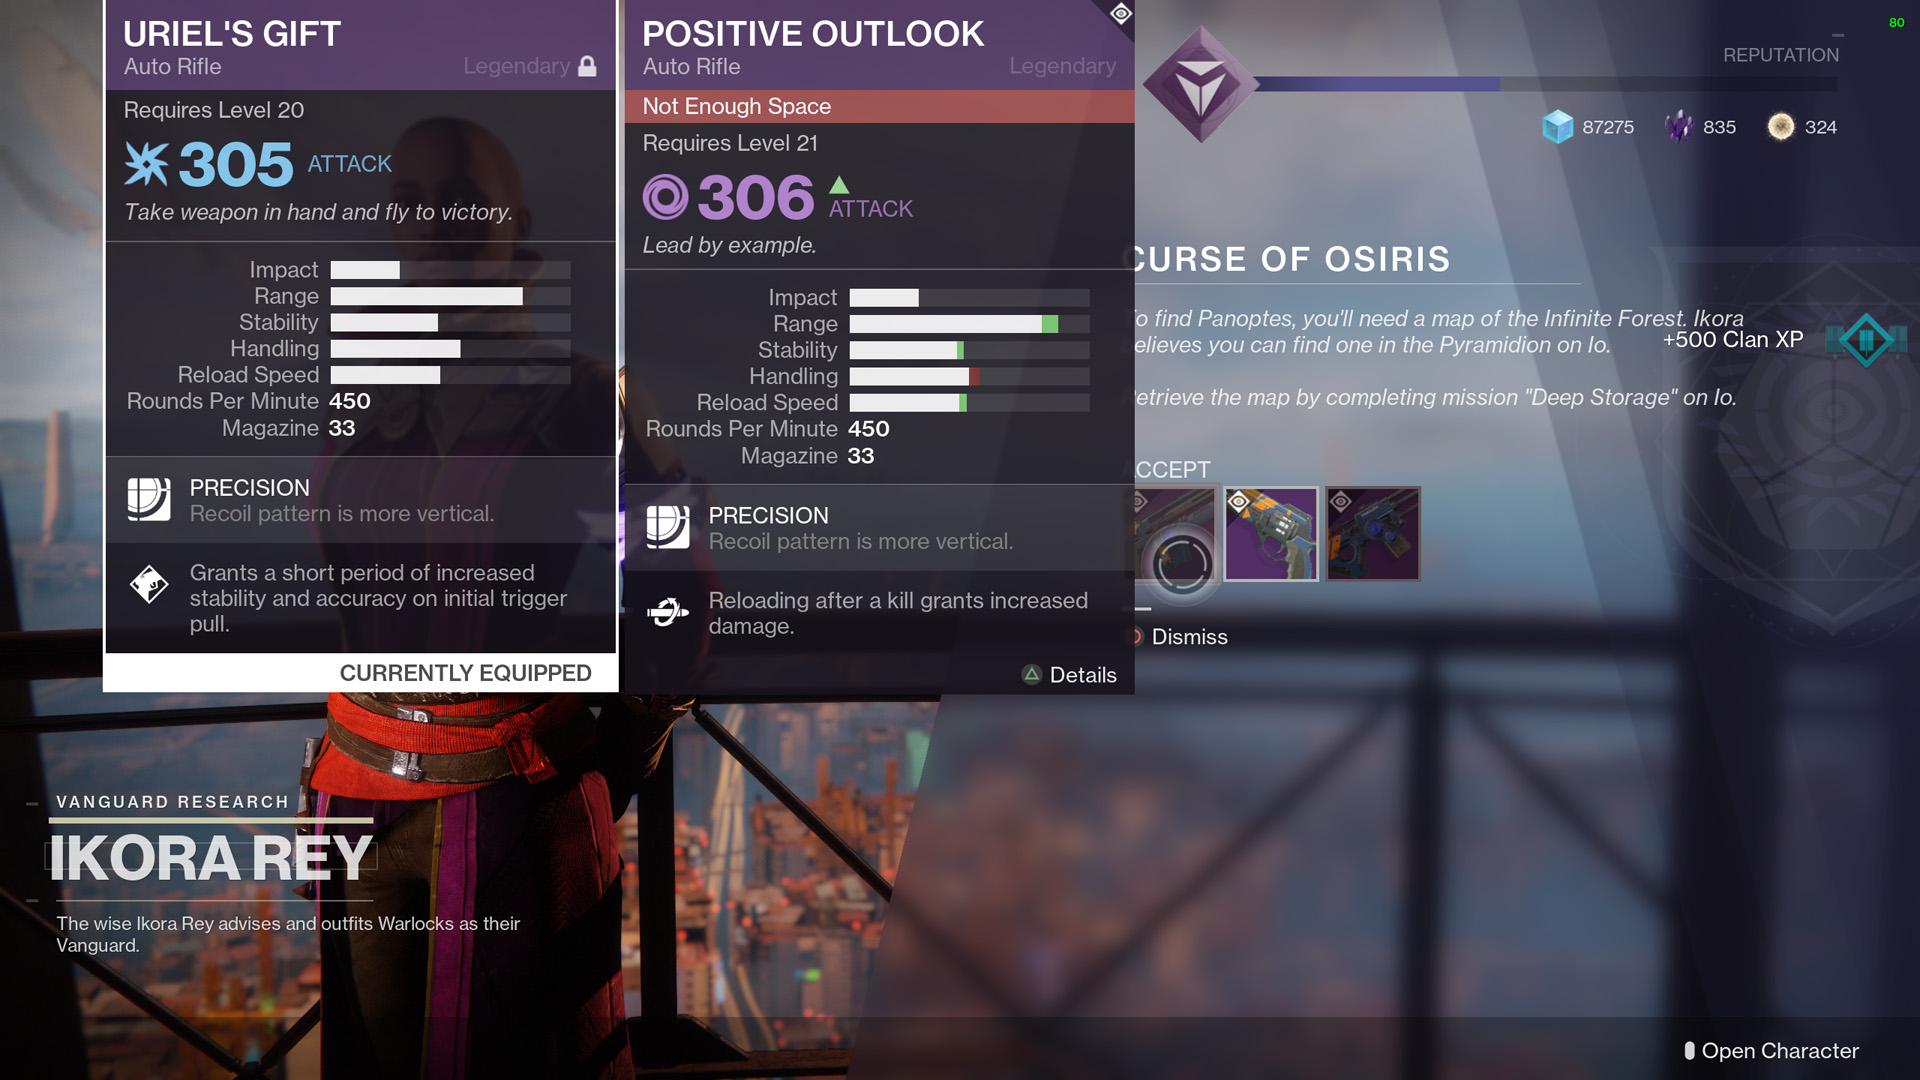 The Positive Outlook Is Very Similar To One Of Best Auto Rifles In Game Uriels Gift Fact They Have Same Impact Rating And Both Are Built